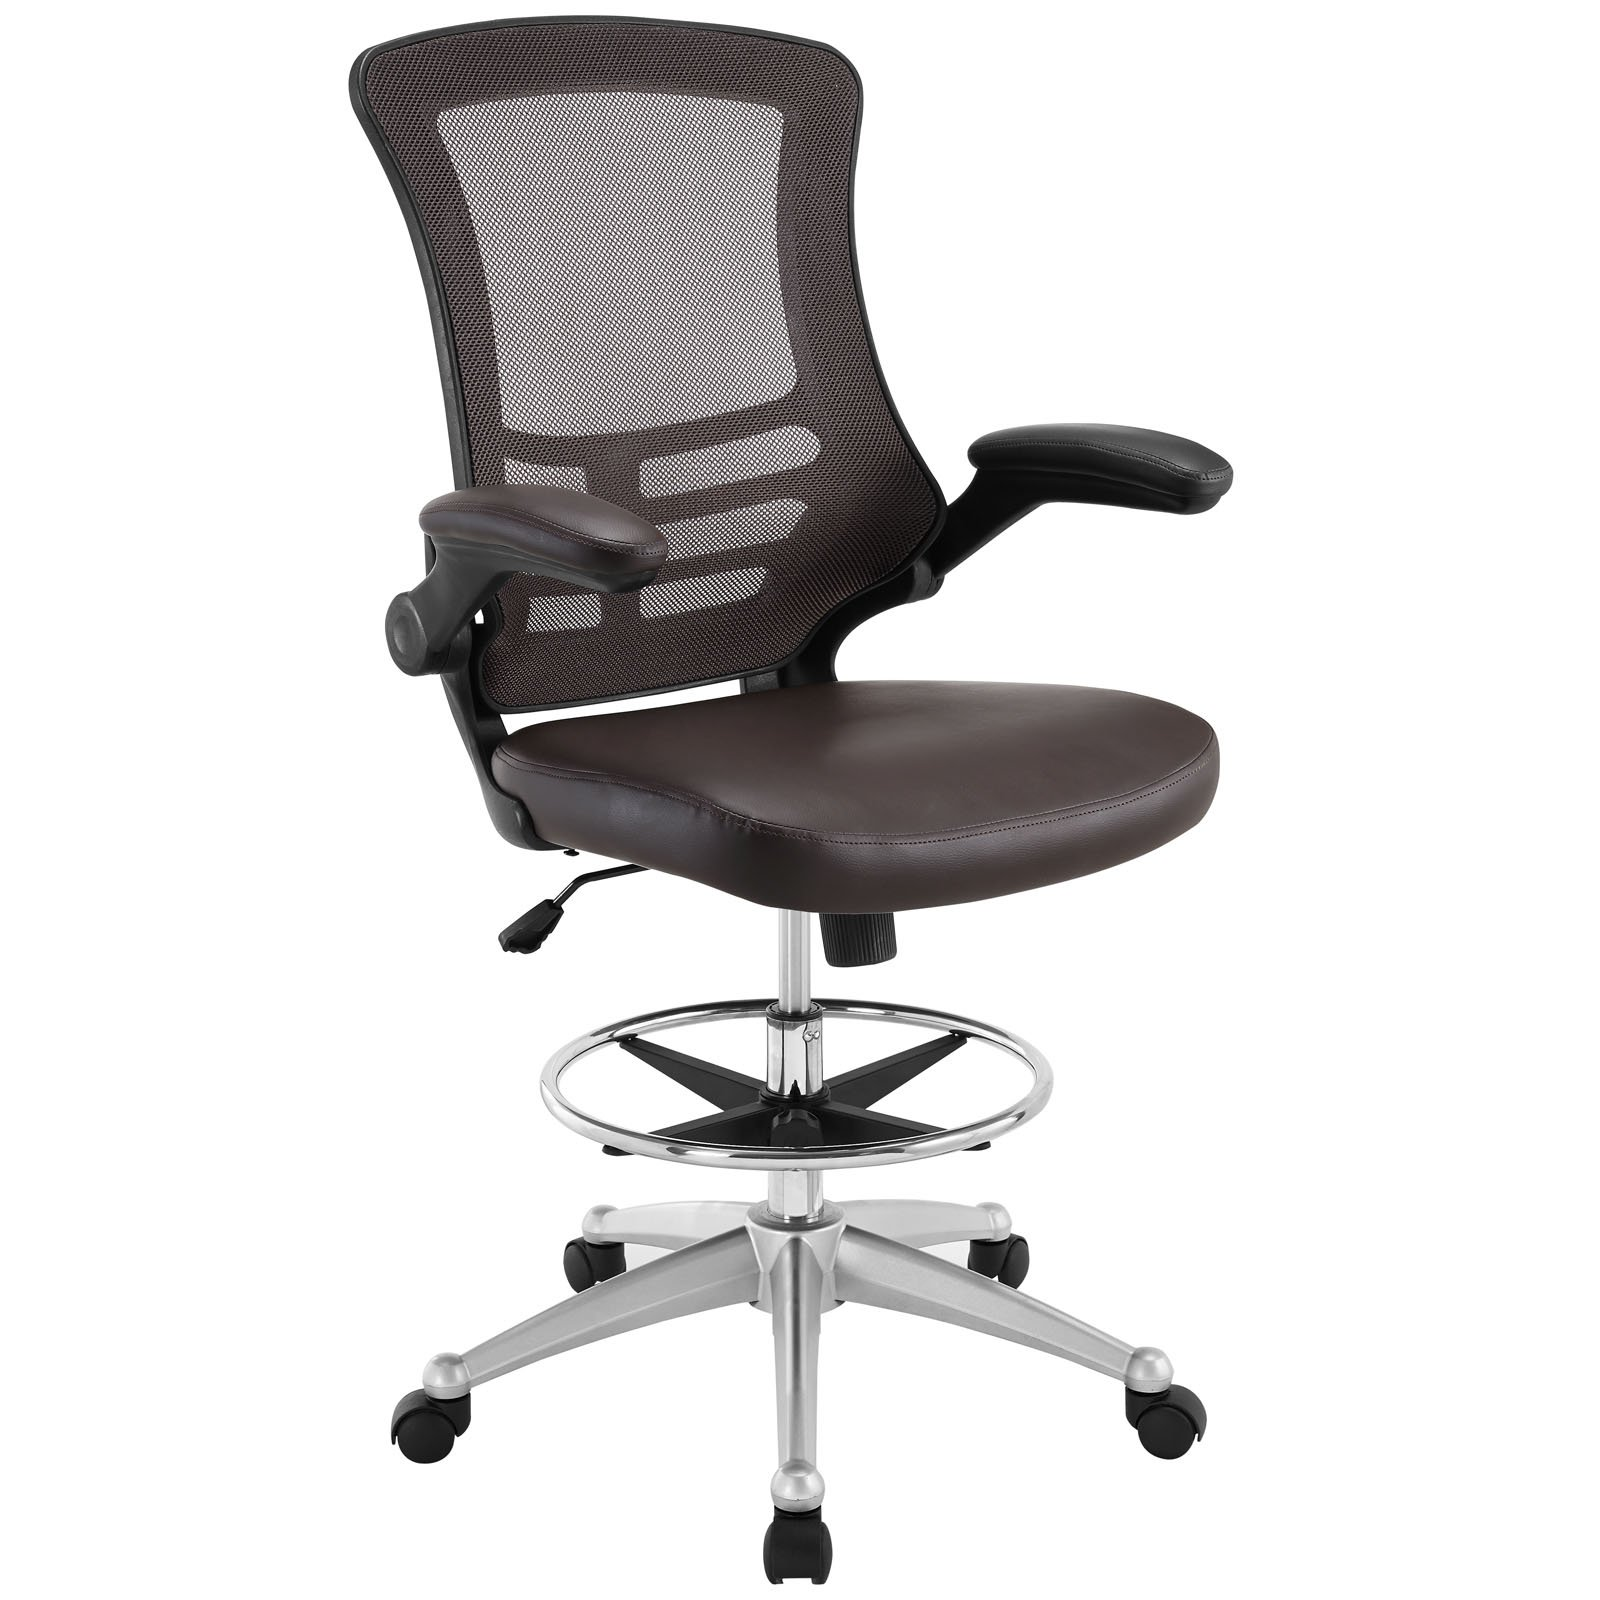 Modway Attainment Drafting Chair In Brown - Tall Office Chair For Adjustable Standing Desks - Drafting Stool With Flip-Up Arm Drafting Table Chair by Modway